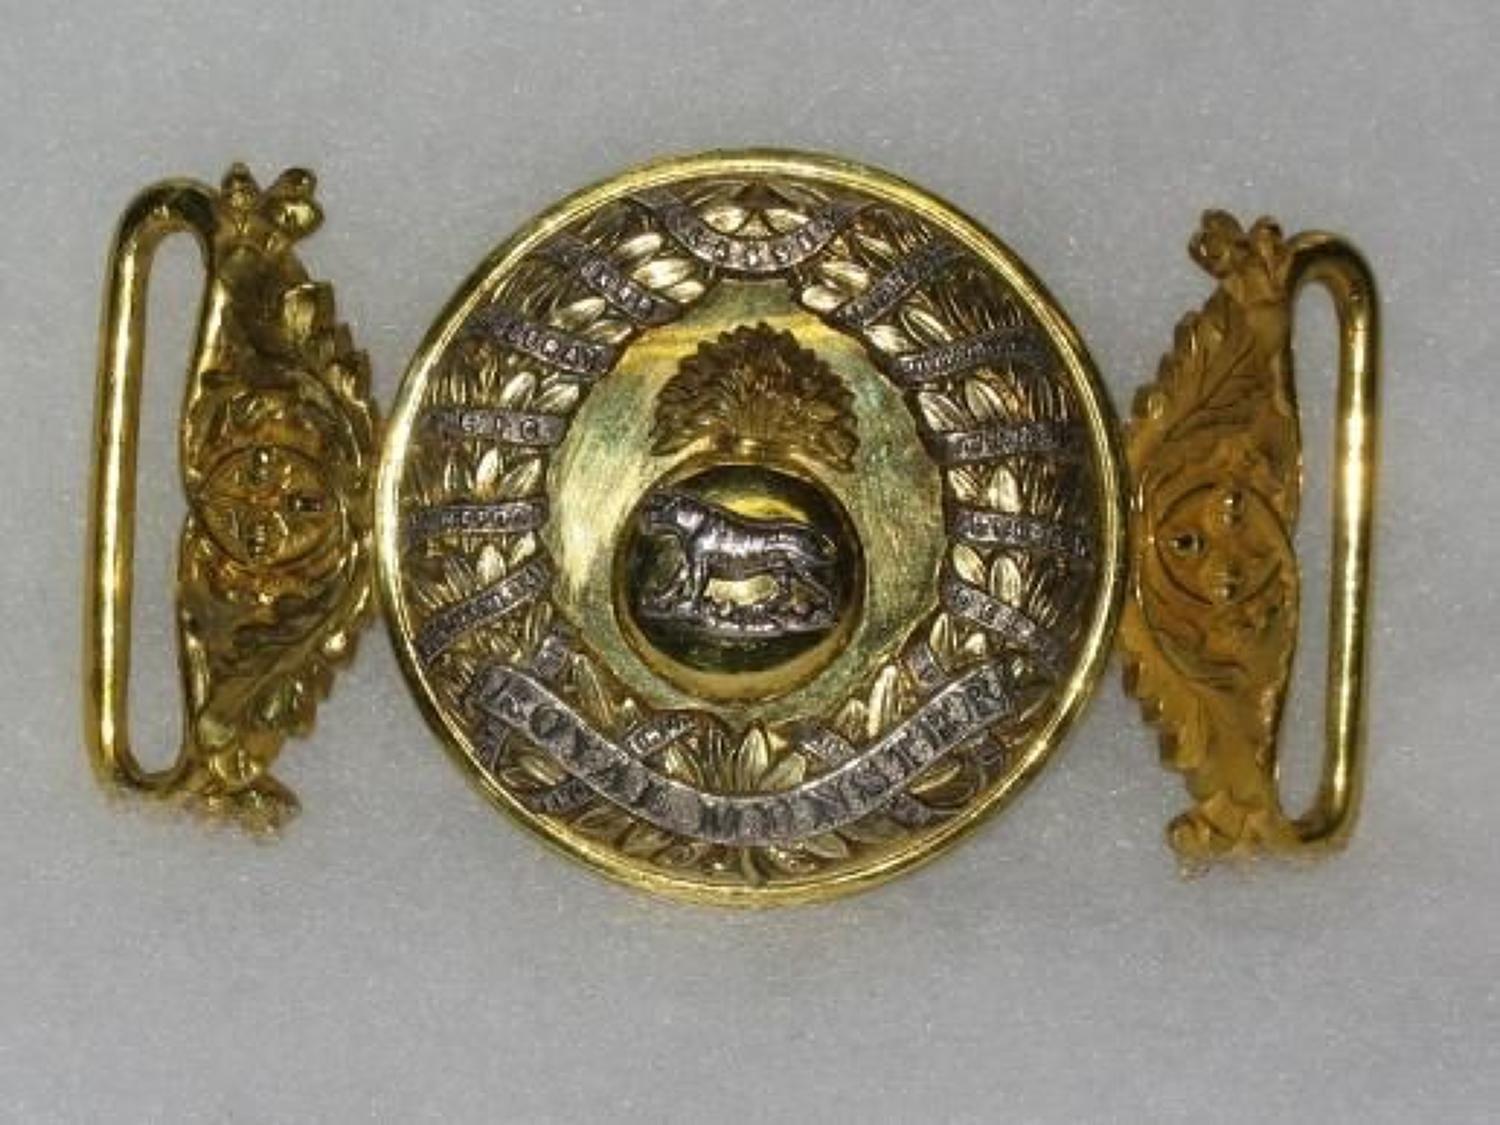 Royal Munster Fusiliers Special Pattern Waist Belt Clasp.